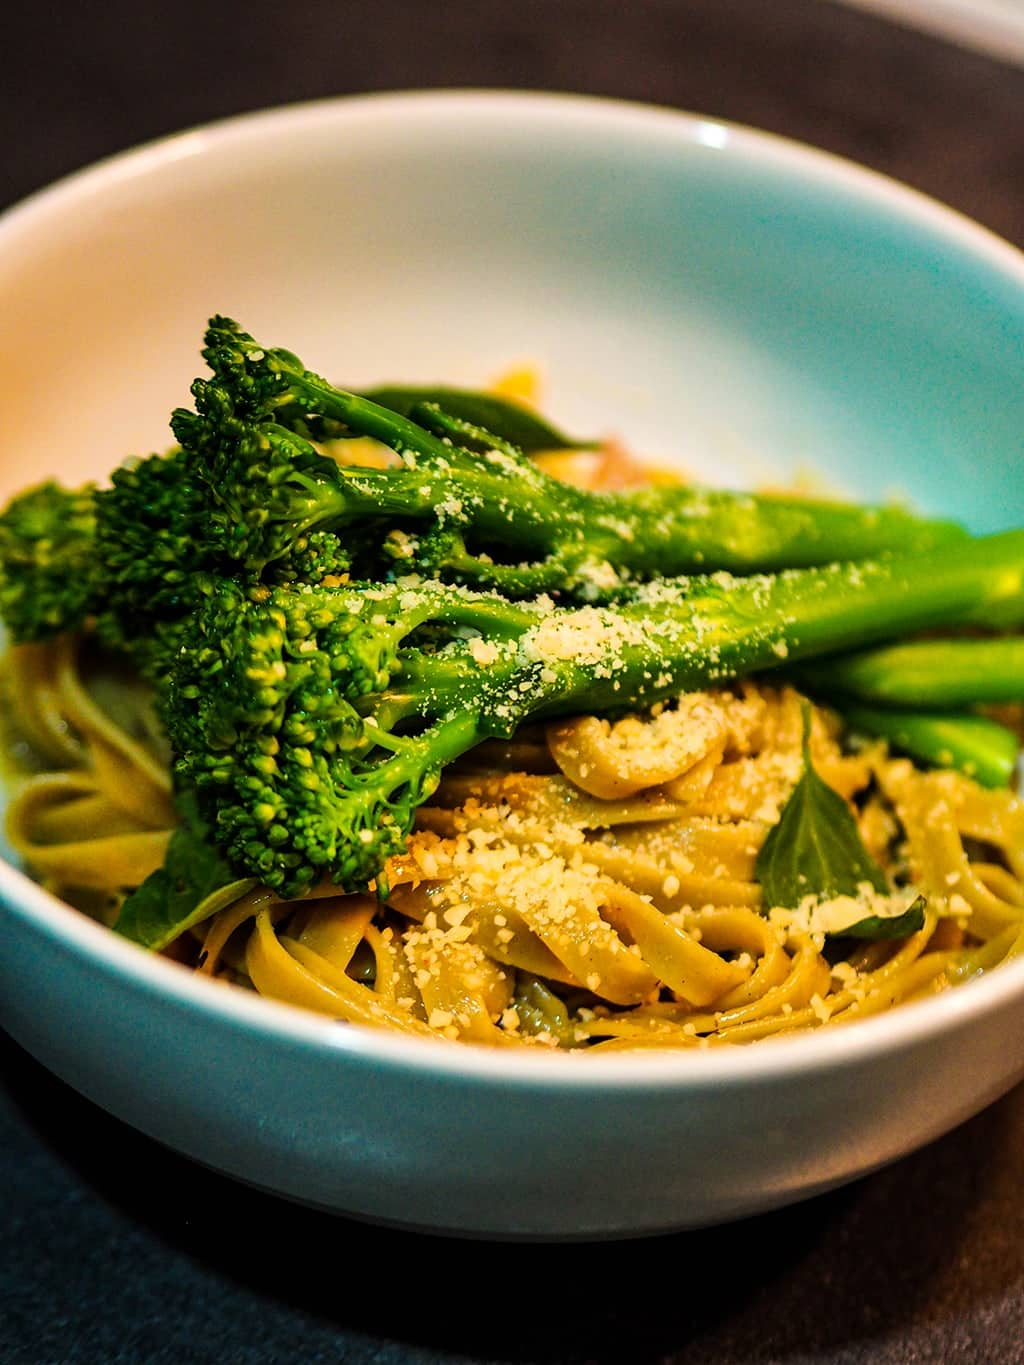 If you're looking for a really easy broccoli recipe, this simple yet delicious garlic, lemon, parmesan, and broccoli pasta recipe is for you! Try this now or pin it for later. #cookingforone #30minutemeals #recipeforone #foodrecipes #onedishkitchen #dinnerideas #vegetariandish | cooking broccoli | broccoli dinner recipes | broccoli dinner | recipe with broccoli | broccoli dishes recipes | broccoli ideas | broccoli dishes | broccoli recipes easy